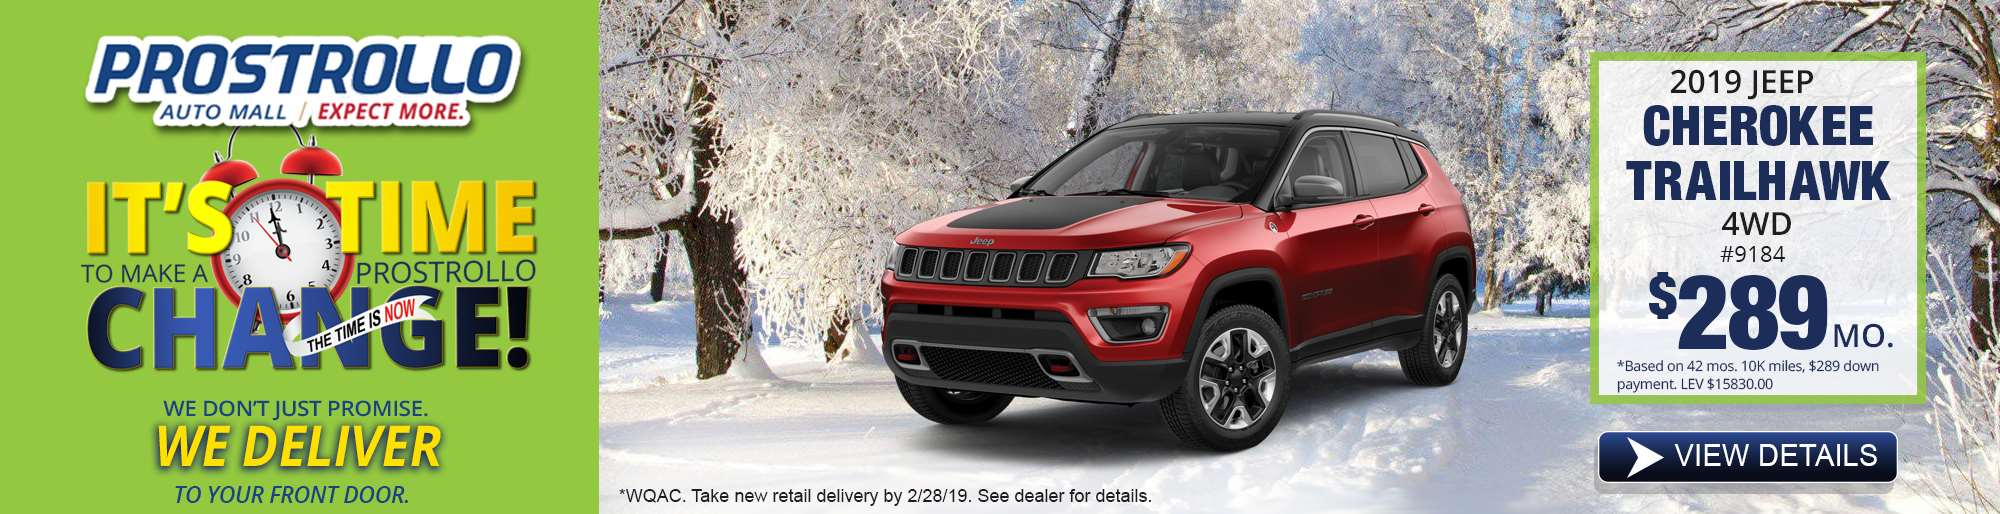 2. 2019 Jeep Cherokee Trailhawk